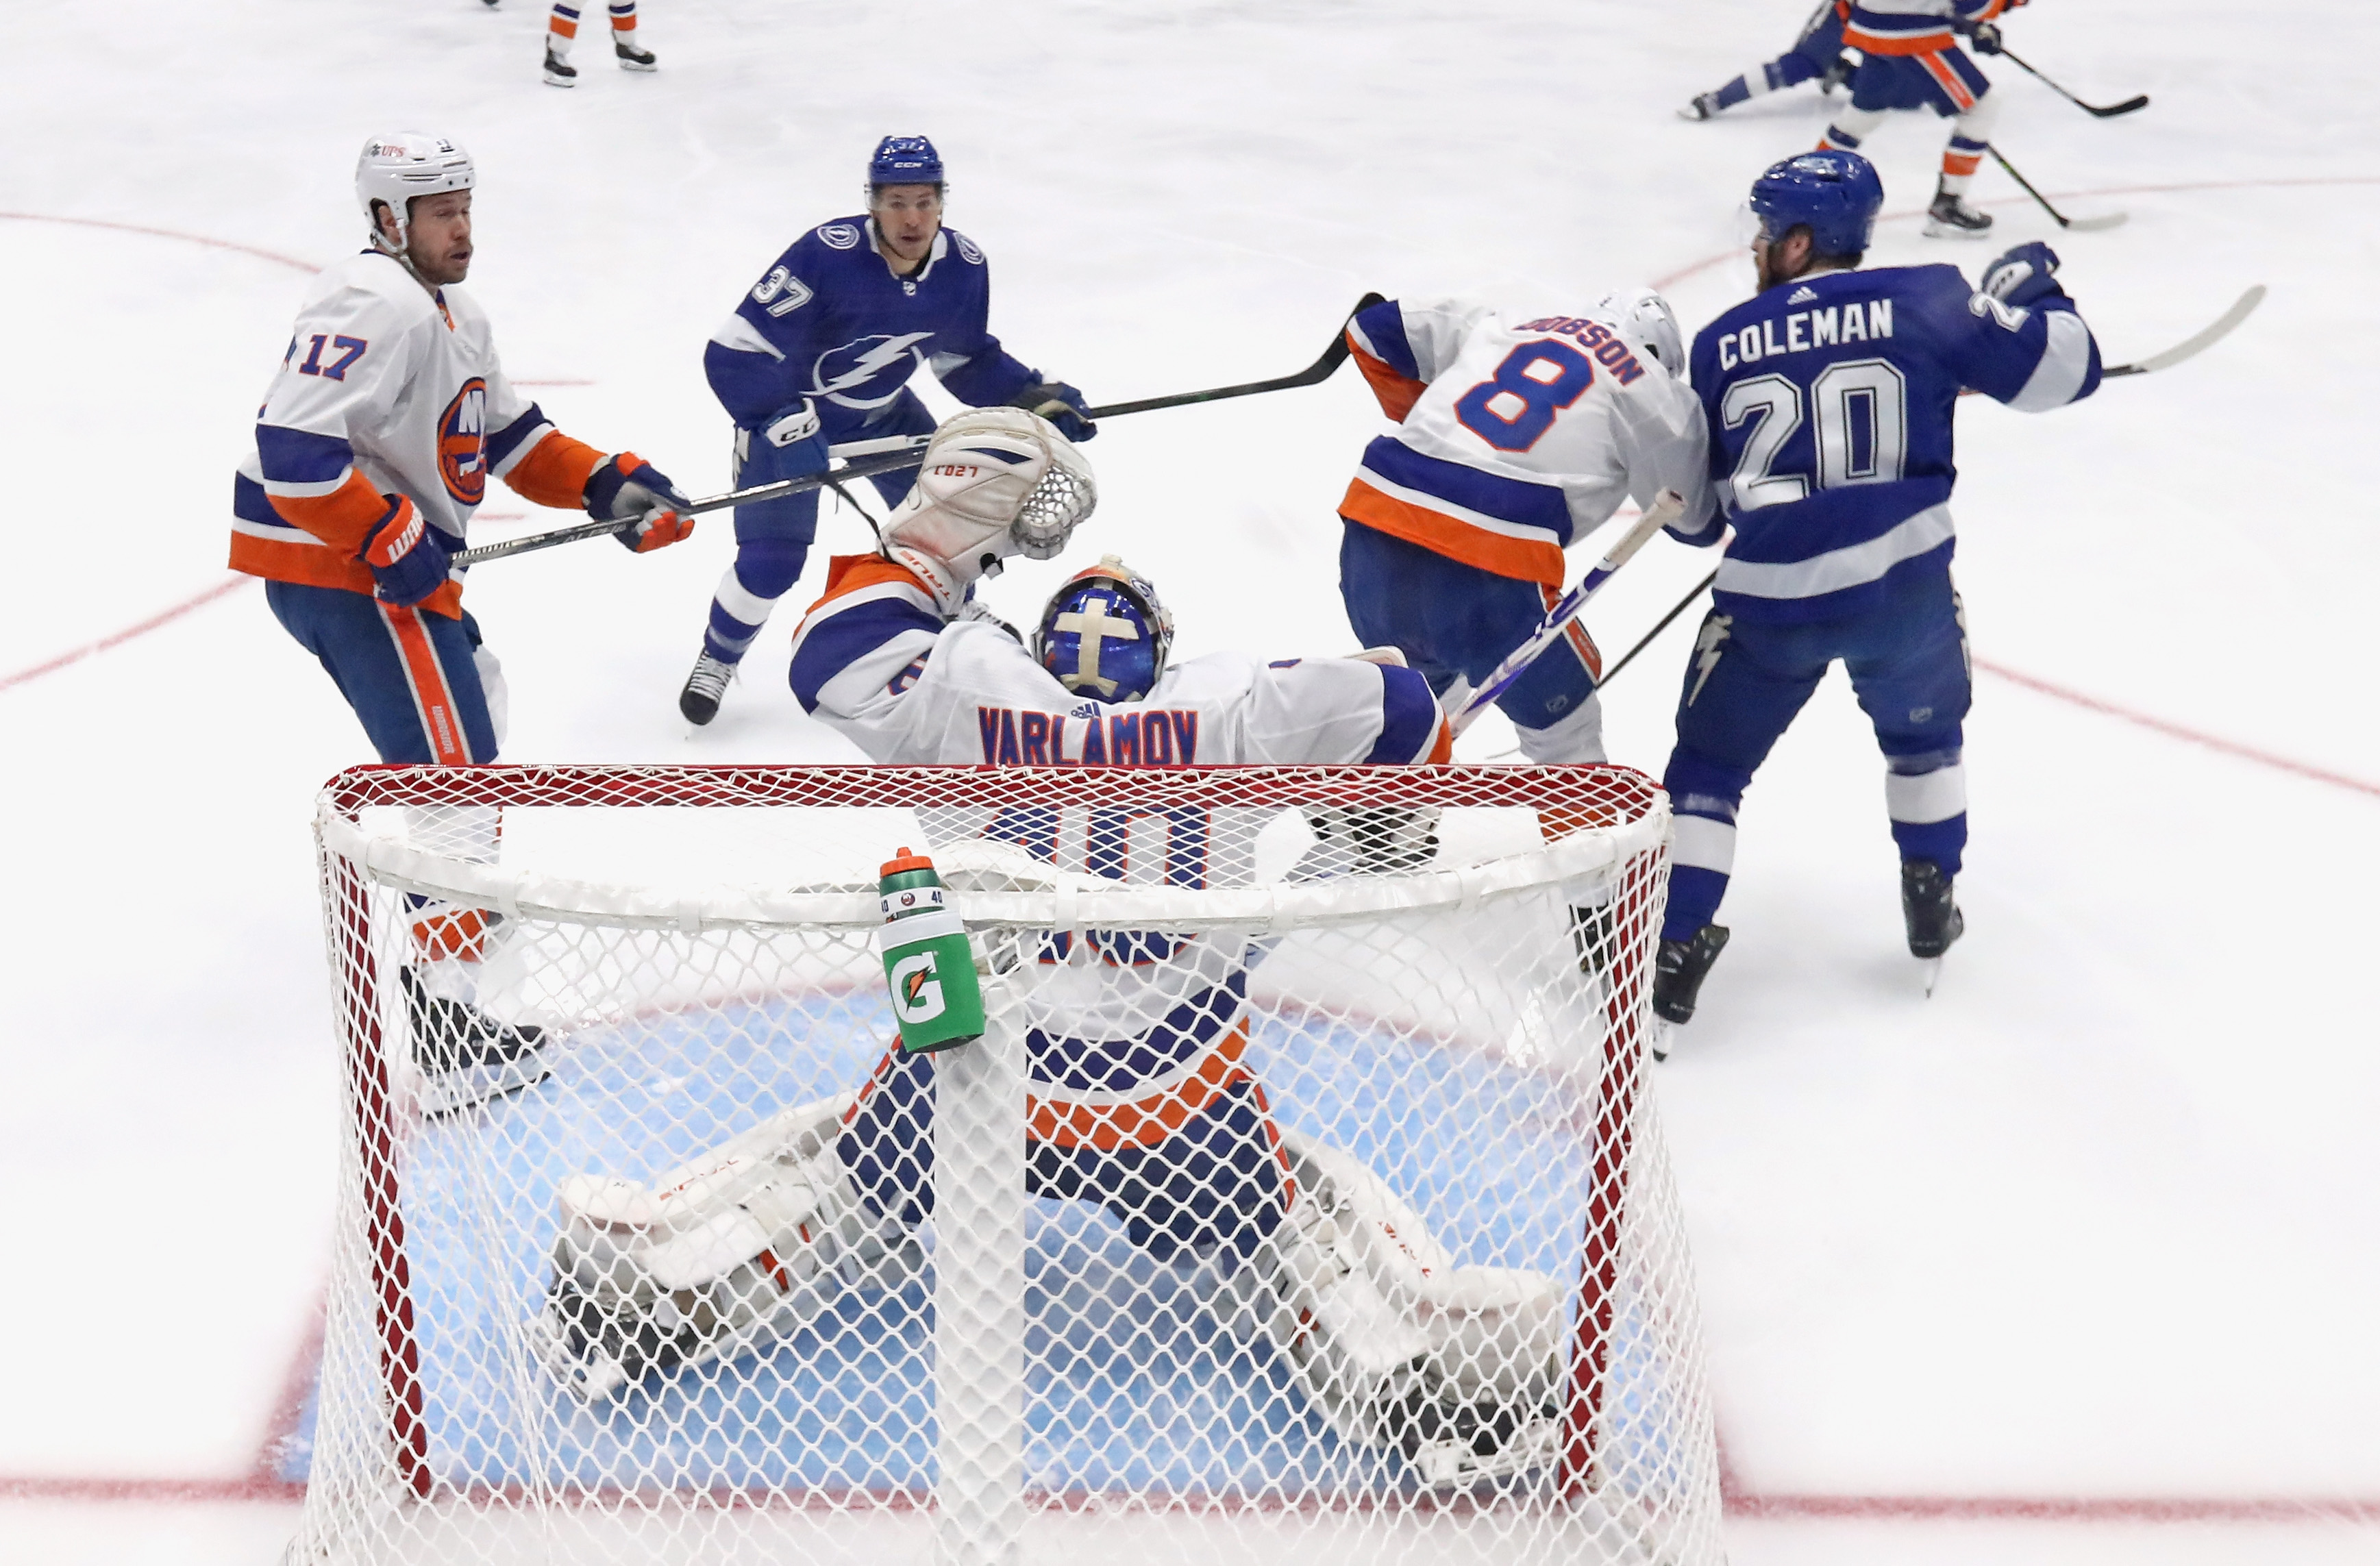 Semyon Varlamov #40 of the New York Islanders tends net against the Tampa Bay Lightning in Game One of the Stanley Cup Semifinals during the 2021 Stanley Cup Playoffs at the Amalie Arena on June 13, 2021 in Tampa, Florida. The Islanders defeated the Lightning 2-1.